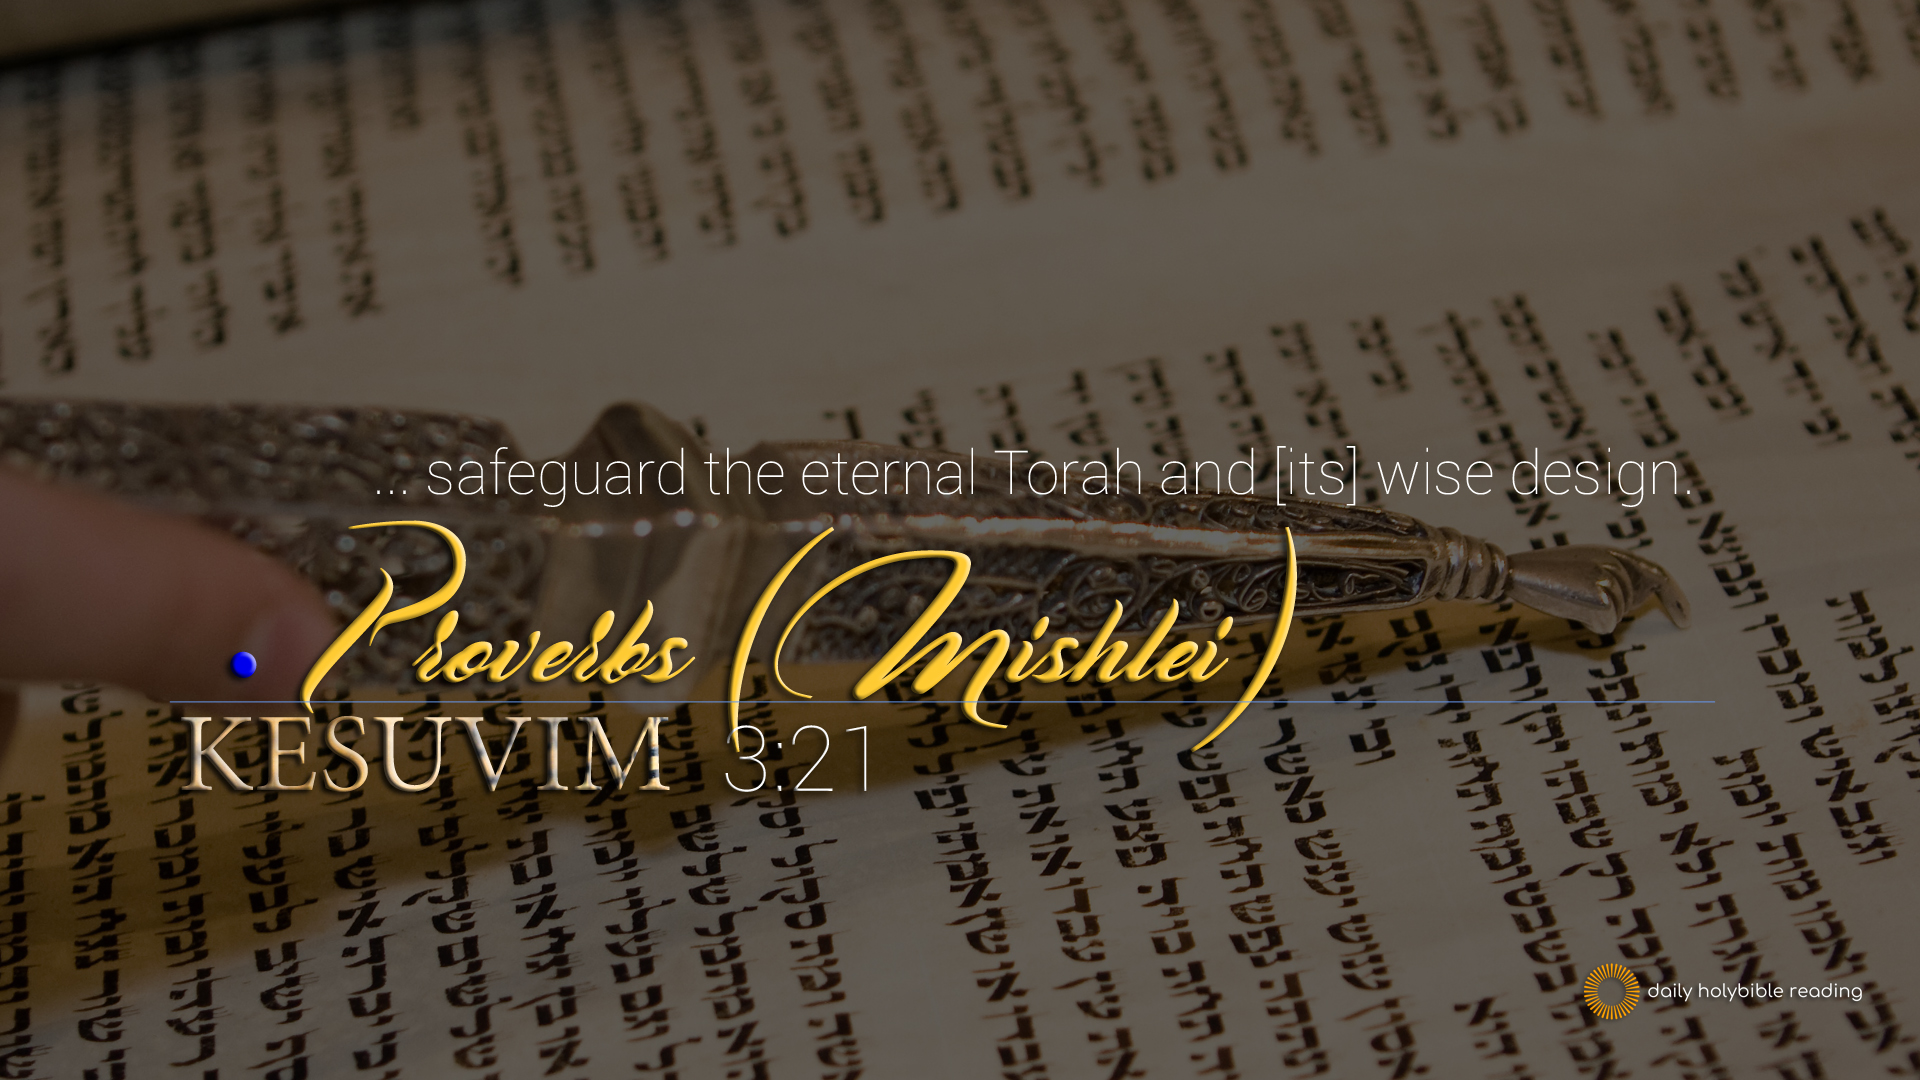 613 MITZVOT (Commandments) 11 to 16 | This Is TRUTH